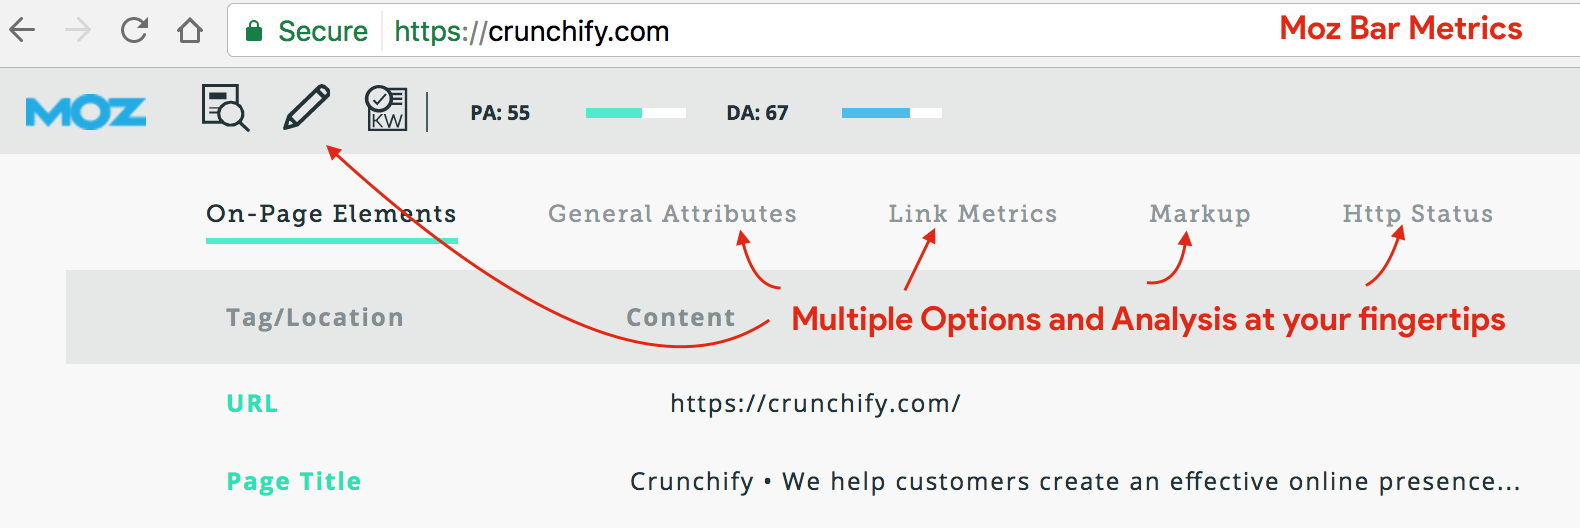 Moz Bar Metrics - Crunchify Tips